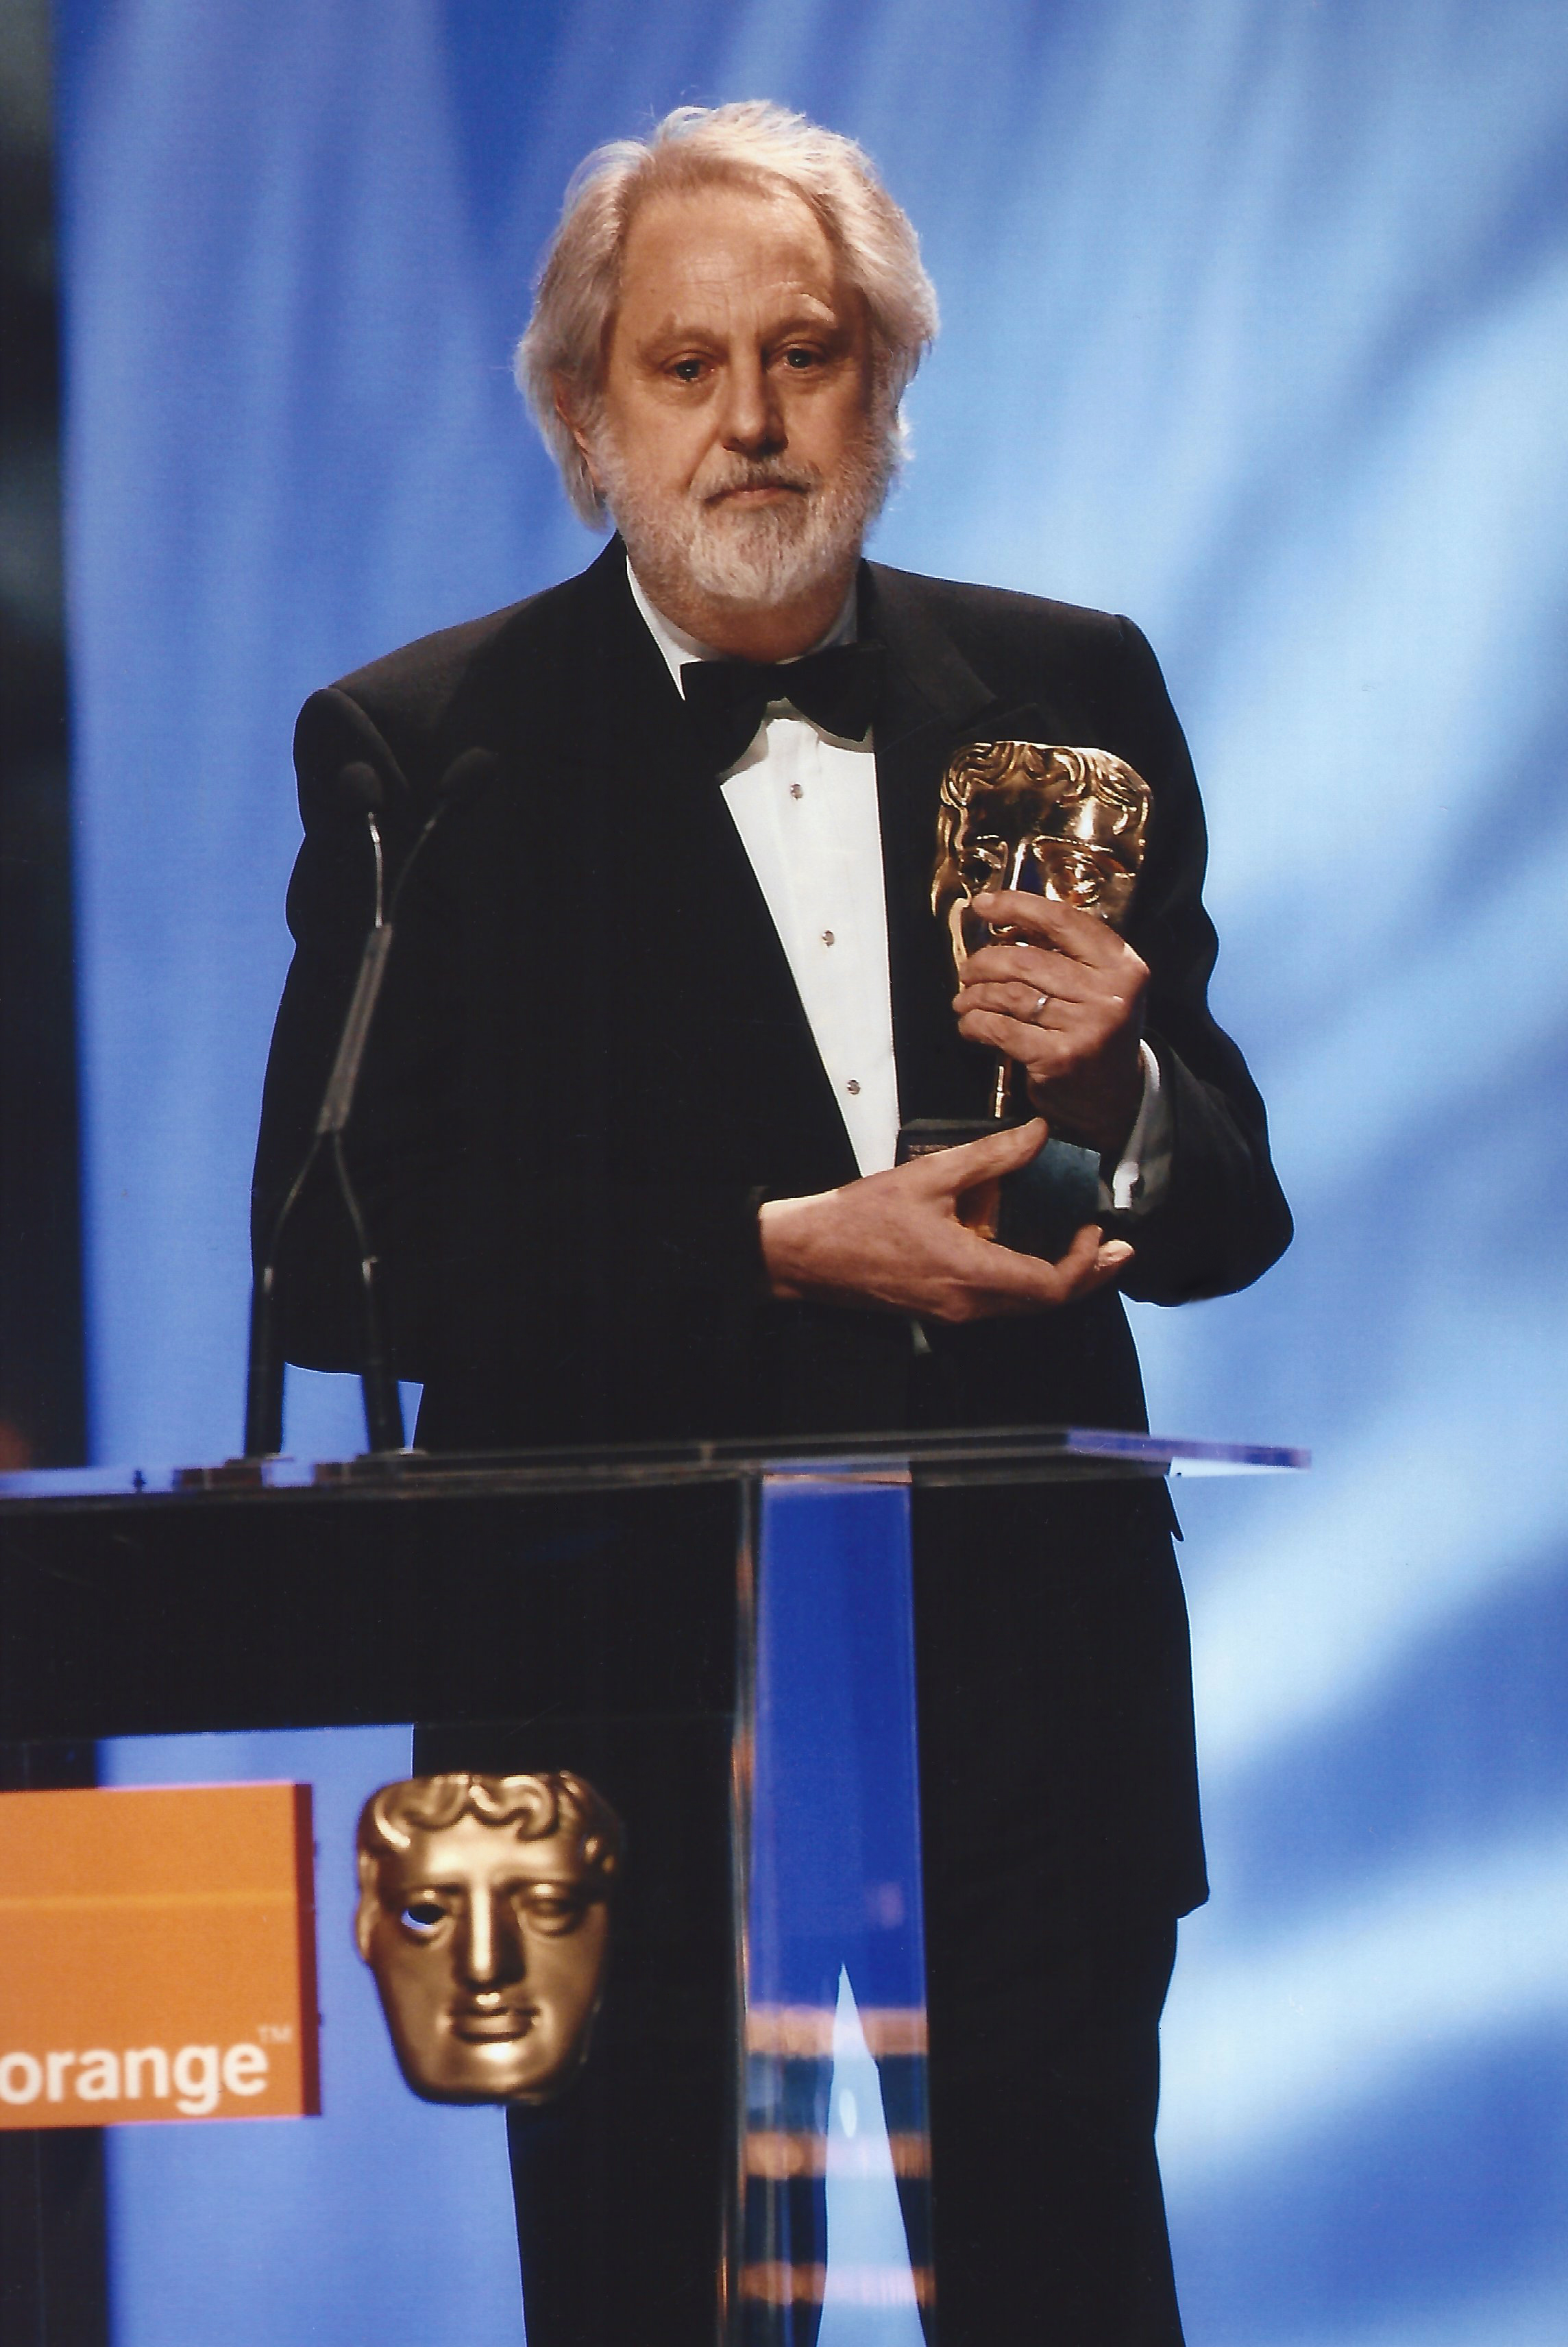 Lord Puttnam receiving BAFTA fellowship, 2006